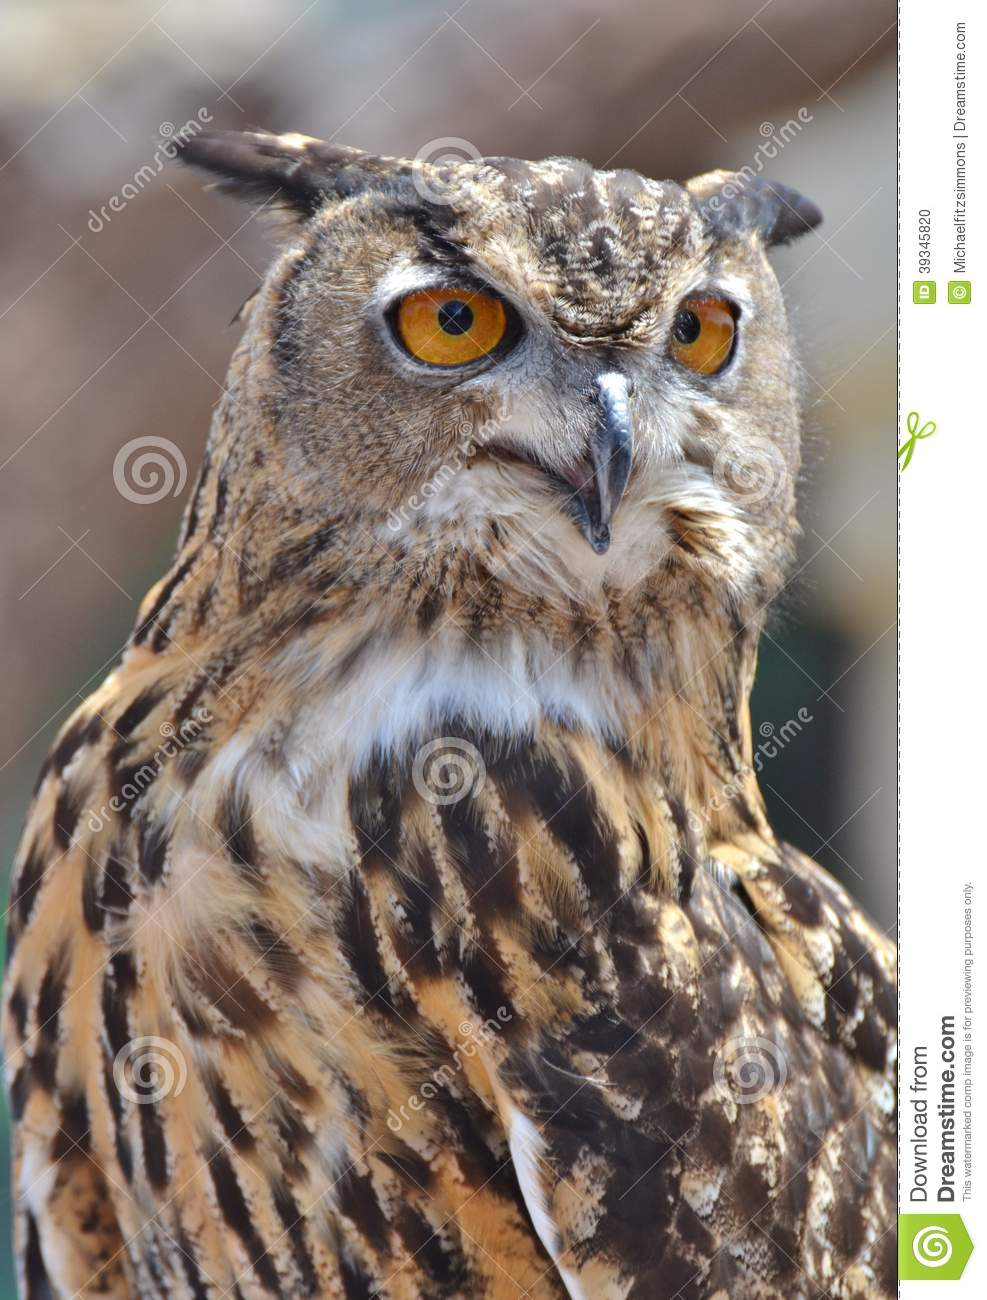 Related Keywords Suggestions Barred Owl Eyes Long Tail Keywords ...